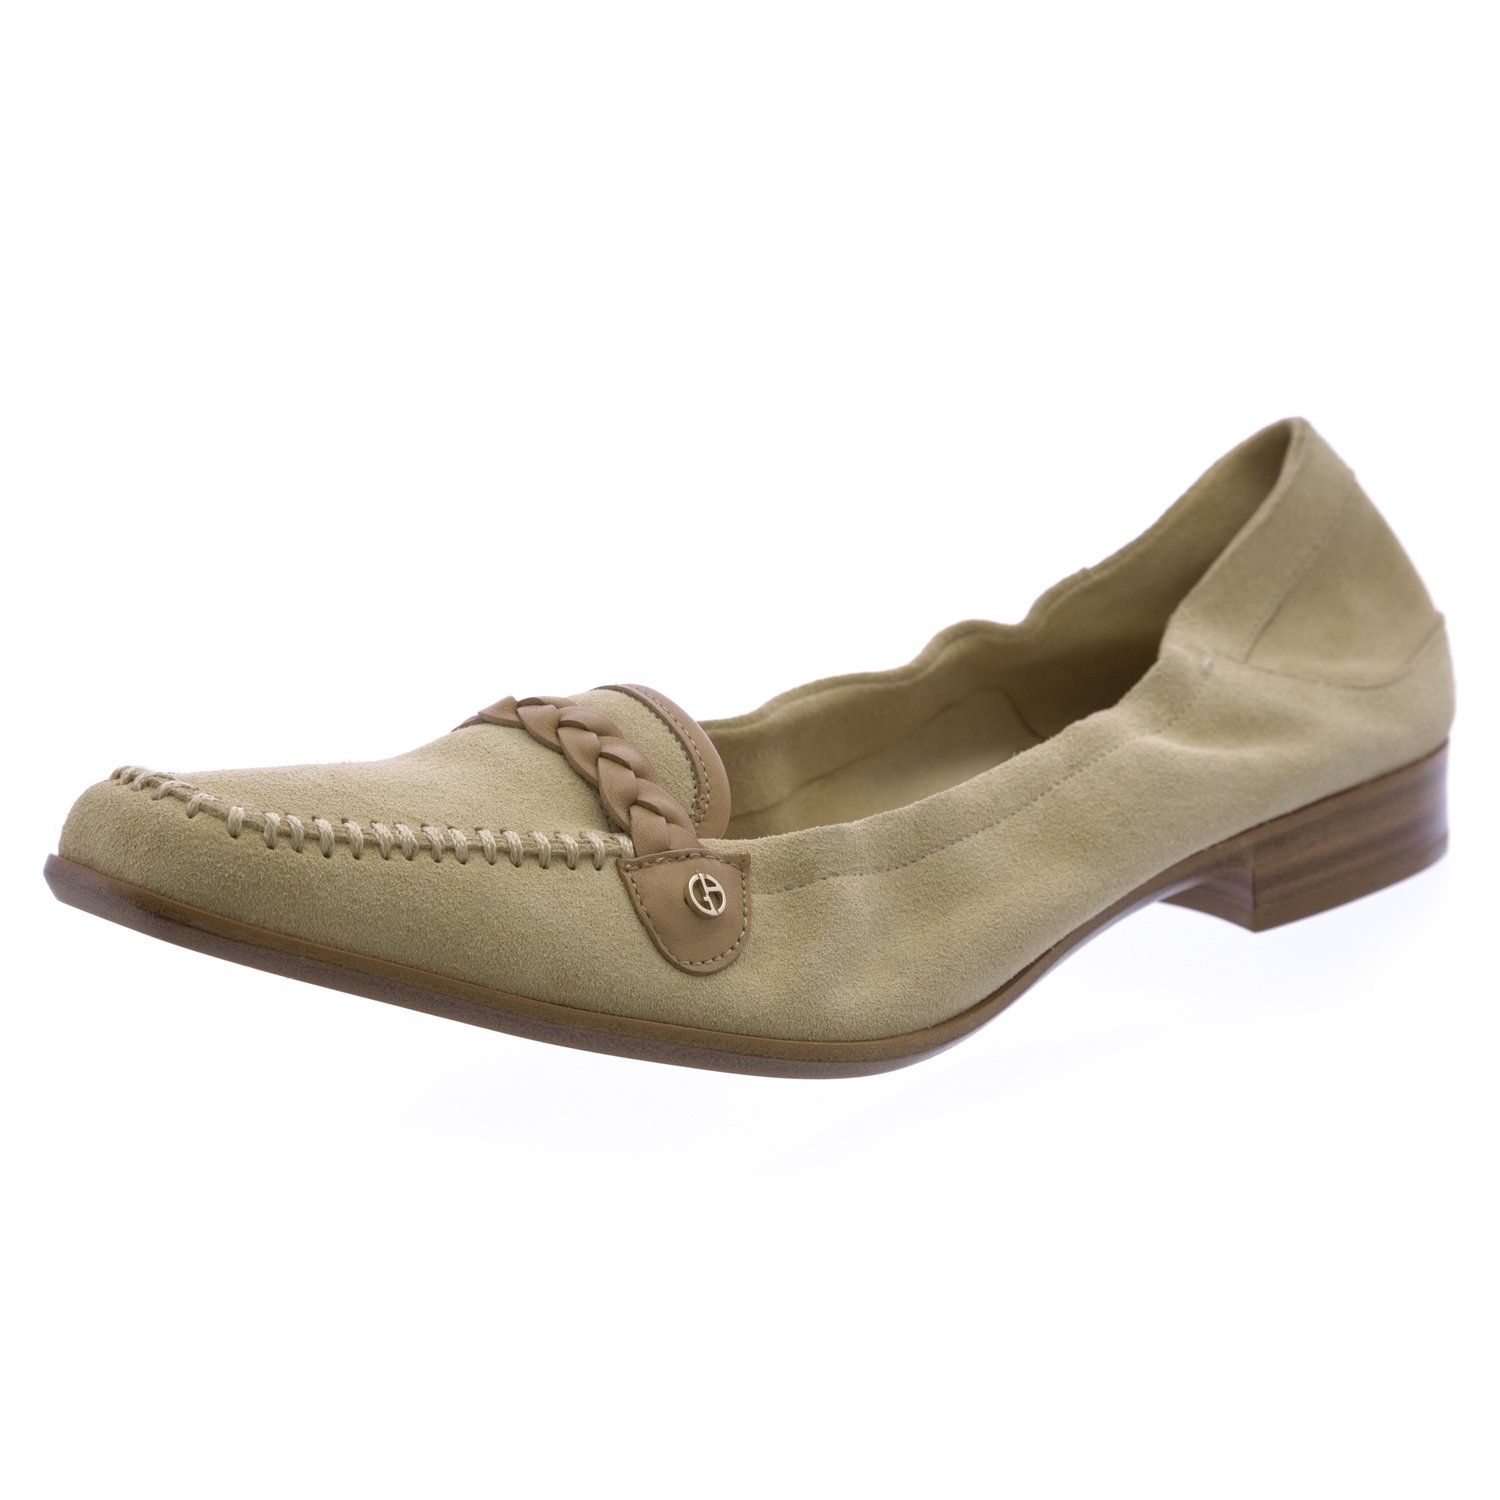 Giorgio Armani Women's Square Toe Leather Loafers 9.5 Natural